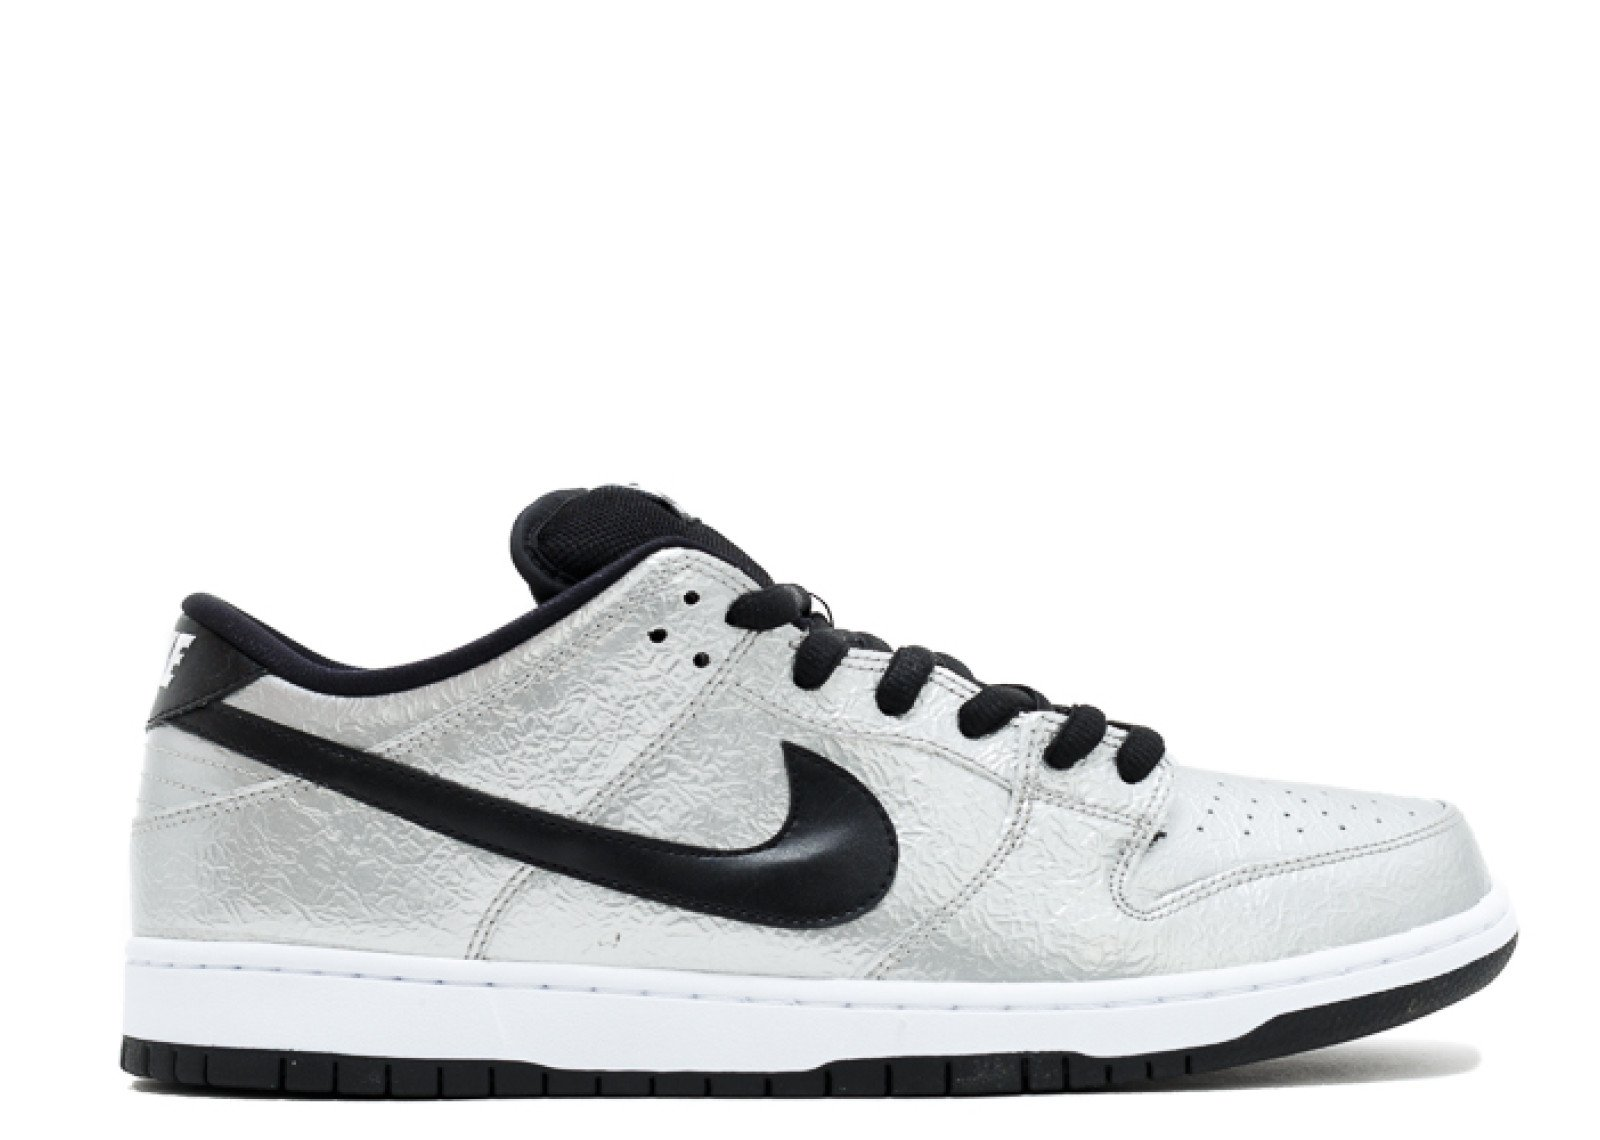 63597200492-nike-nike-dunk-low-premium-sb-cold-pizza-metallic-silver-black-white-081322_1.jpg.d7f063699bbb5500cb857ace47132657.jpg